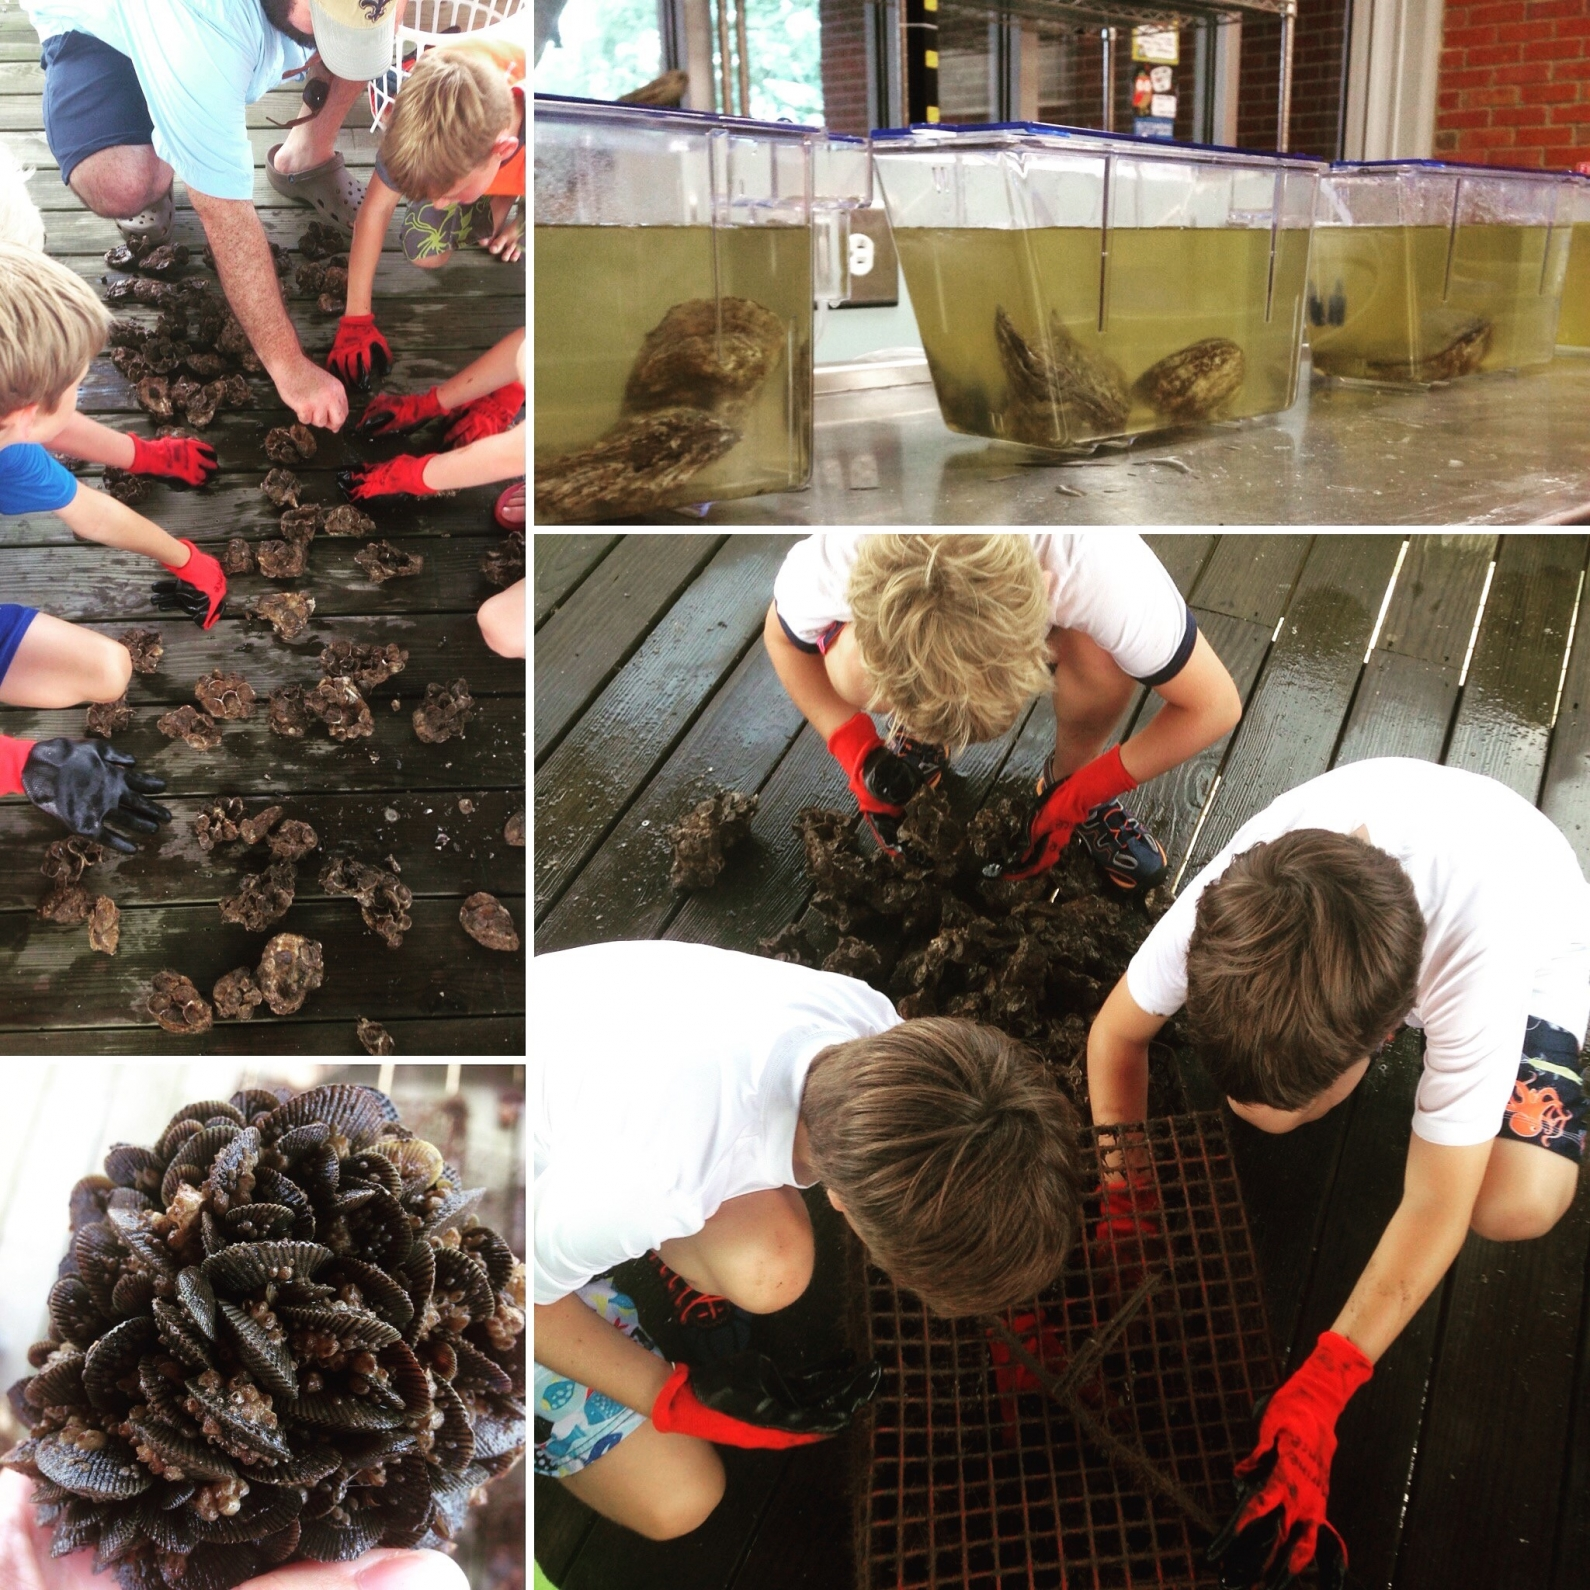 Marine science campers at St. Stanislaus High School in Bay St. Louis, Mississippi, learn about oysters and oyster gardening.